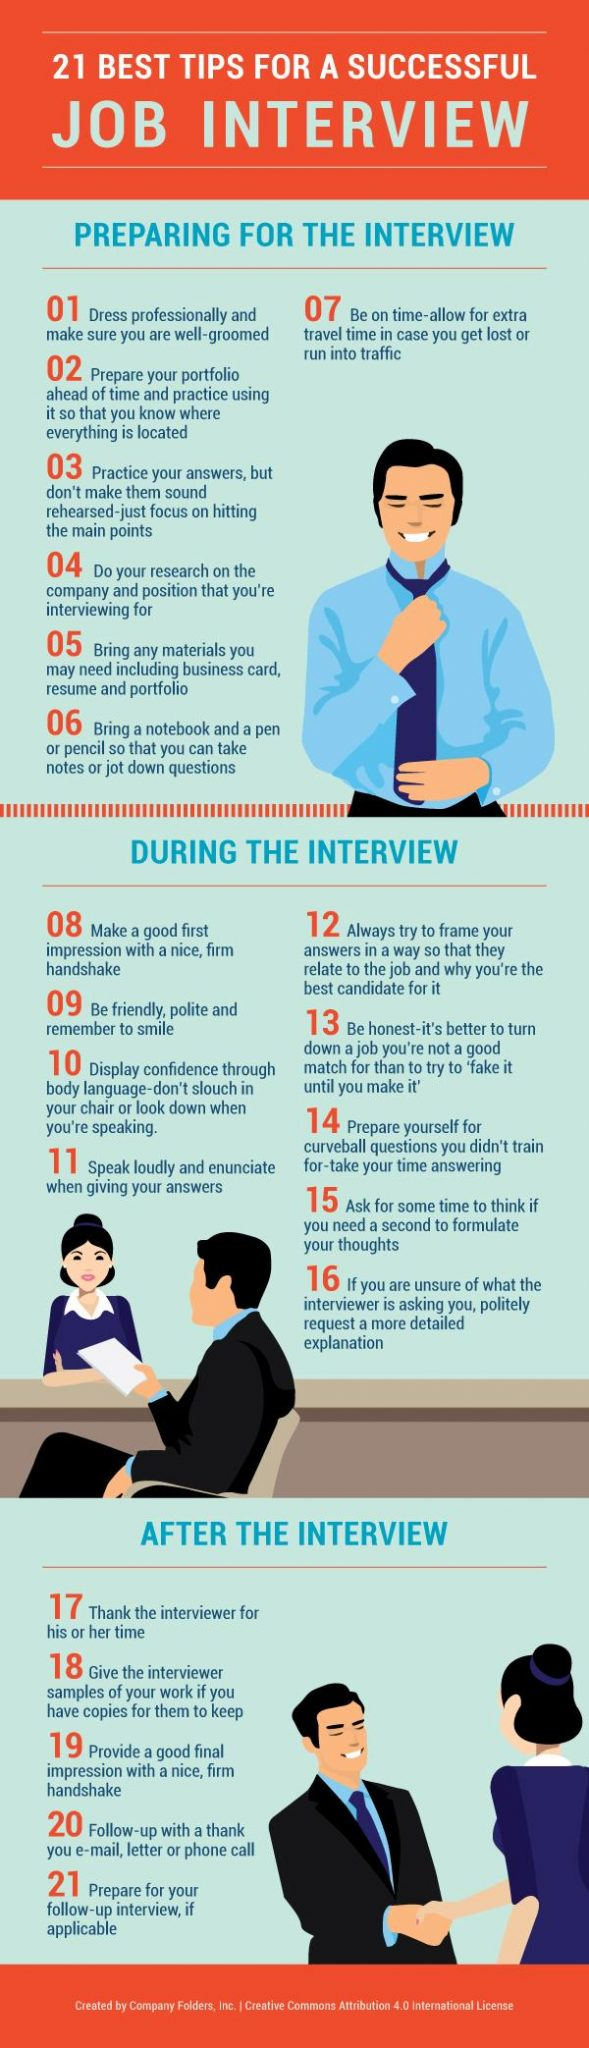 How to Prepare For a Job Interview? 2